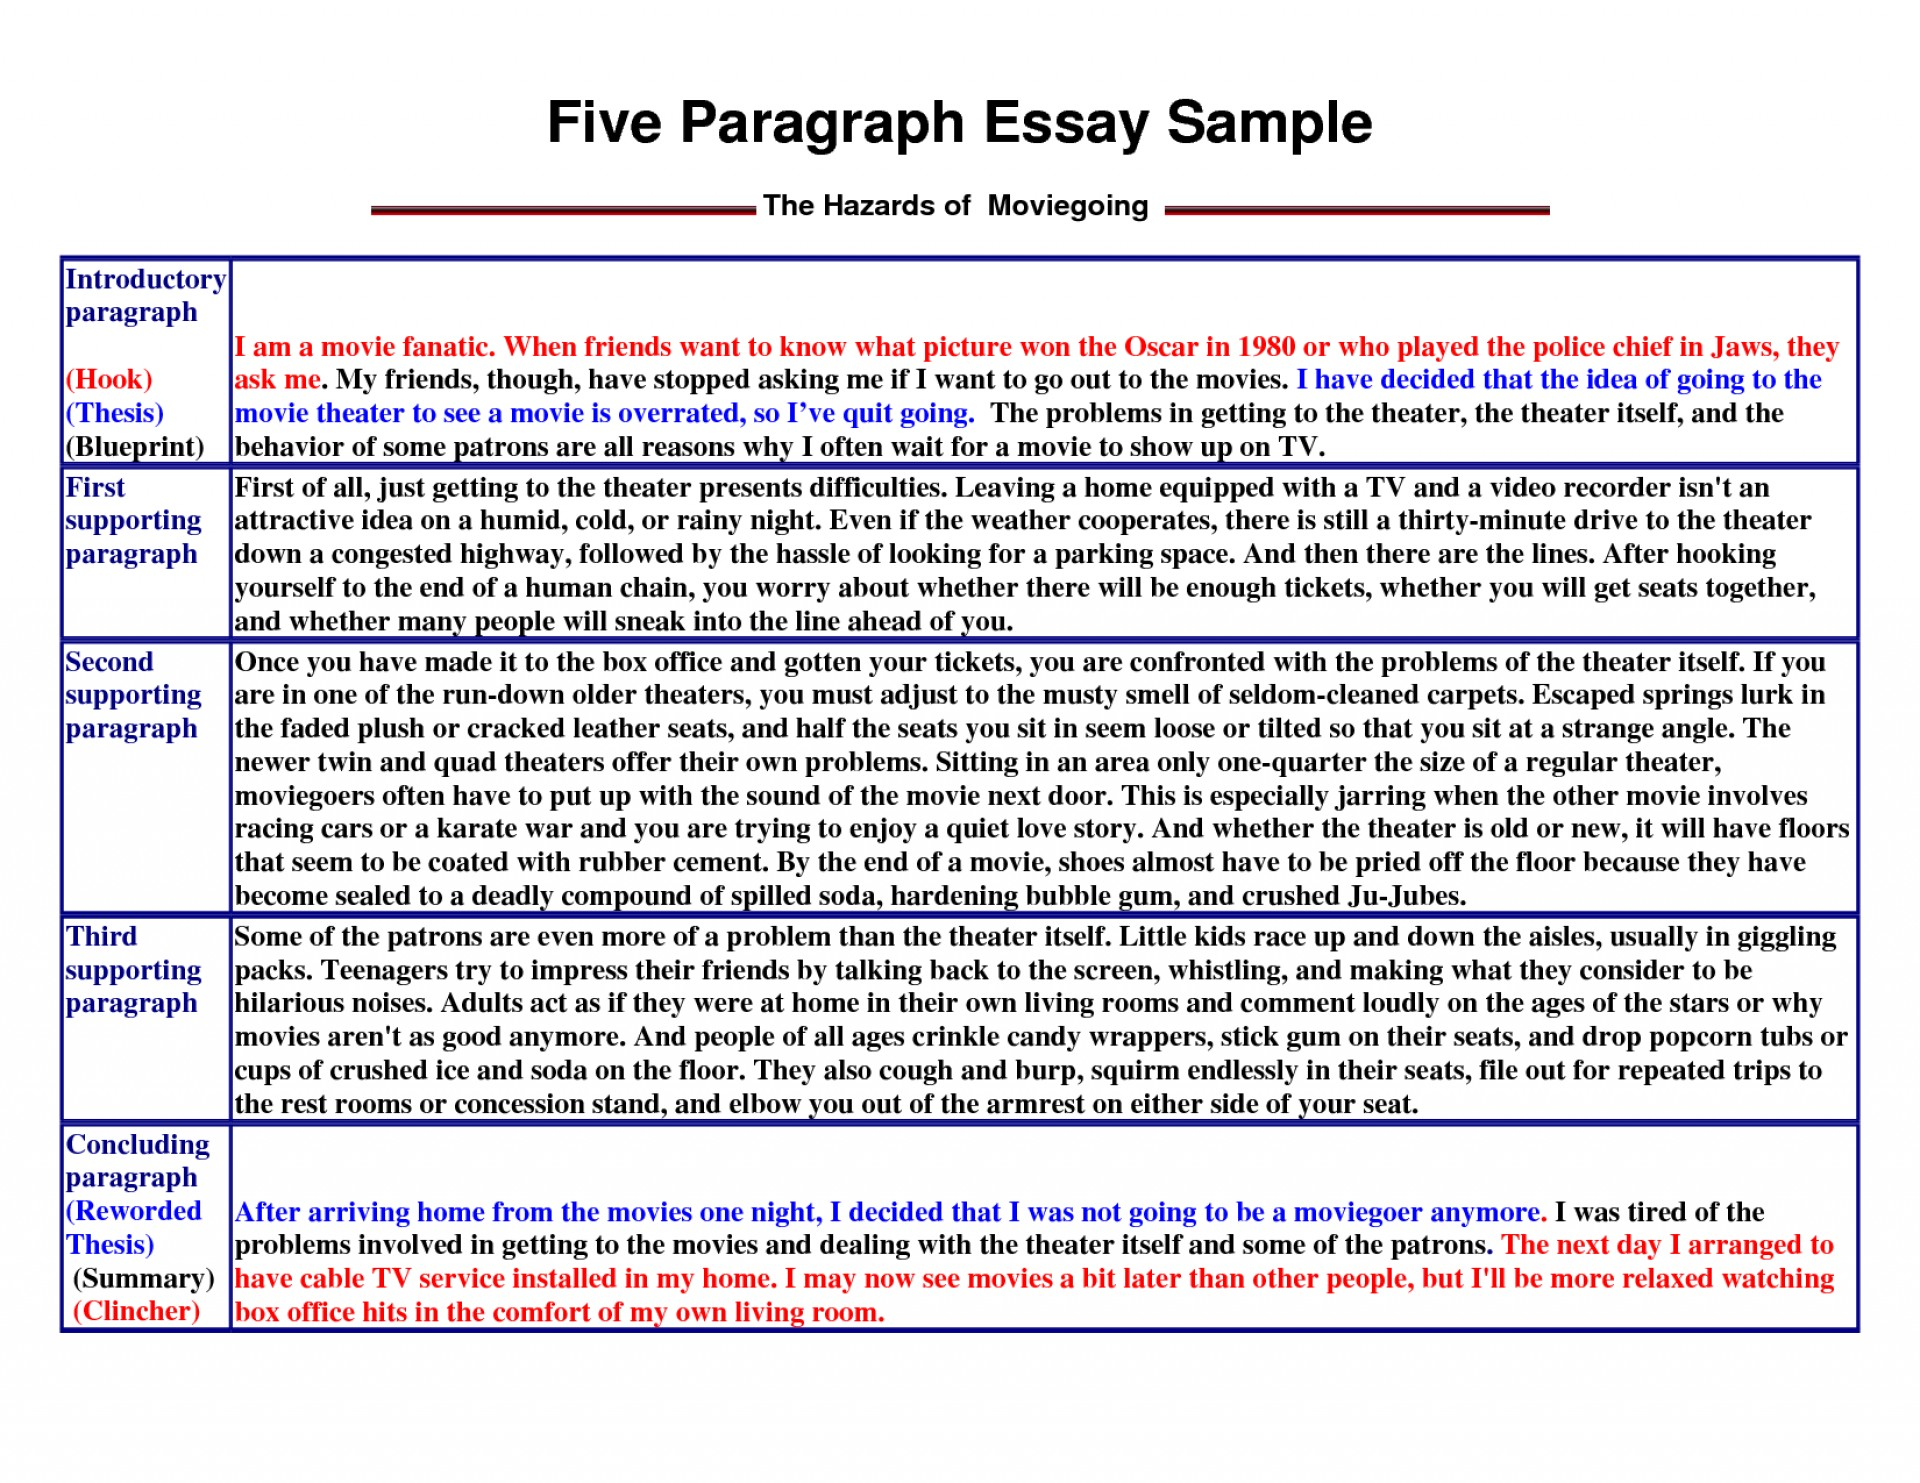 002 Essay Example How To Write Unbelievable A 5 Paragraph In 30 Minutes On Book 1920